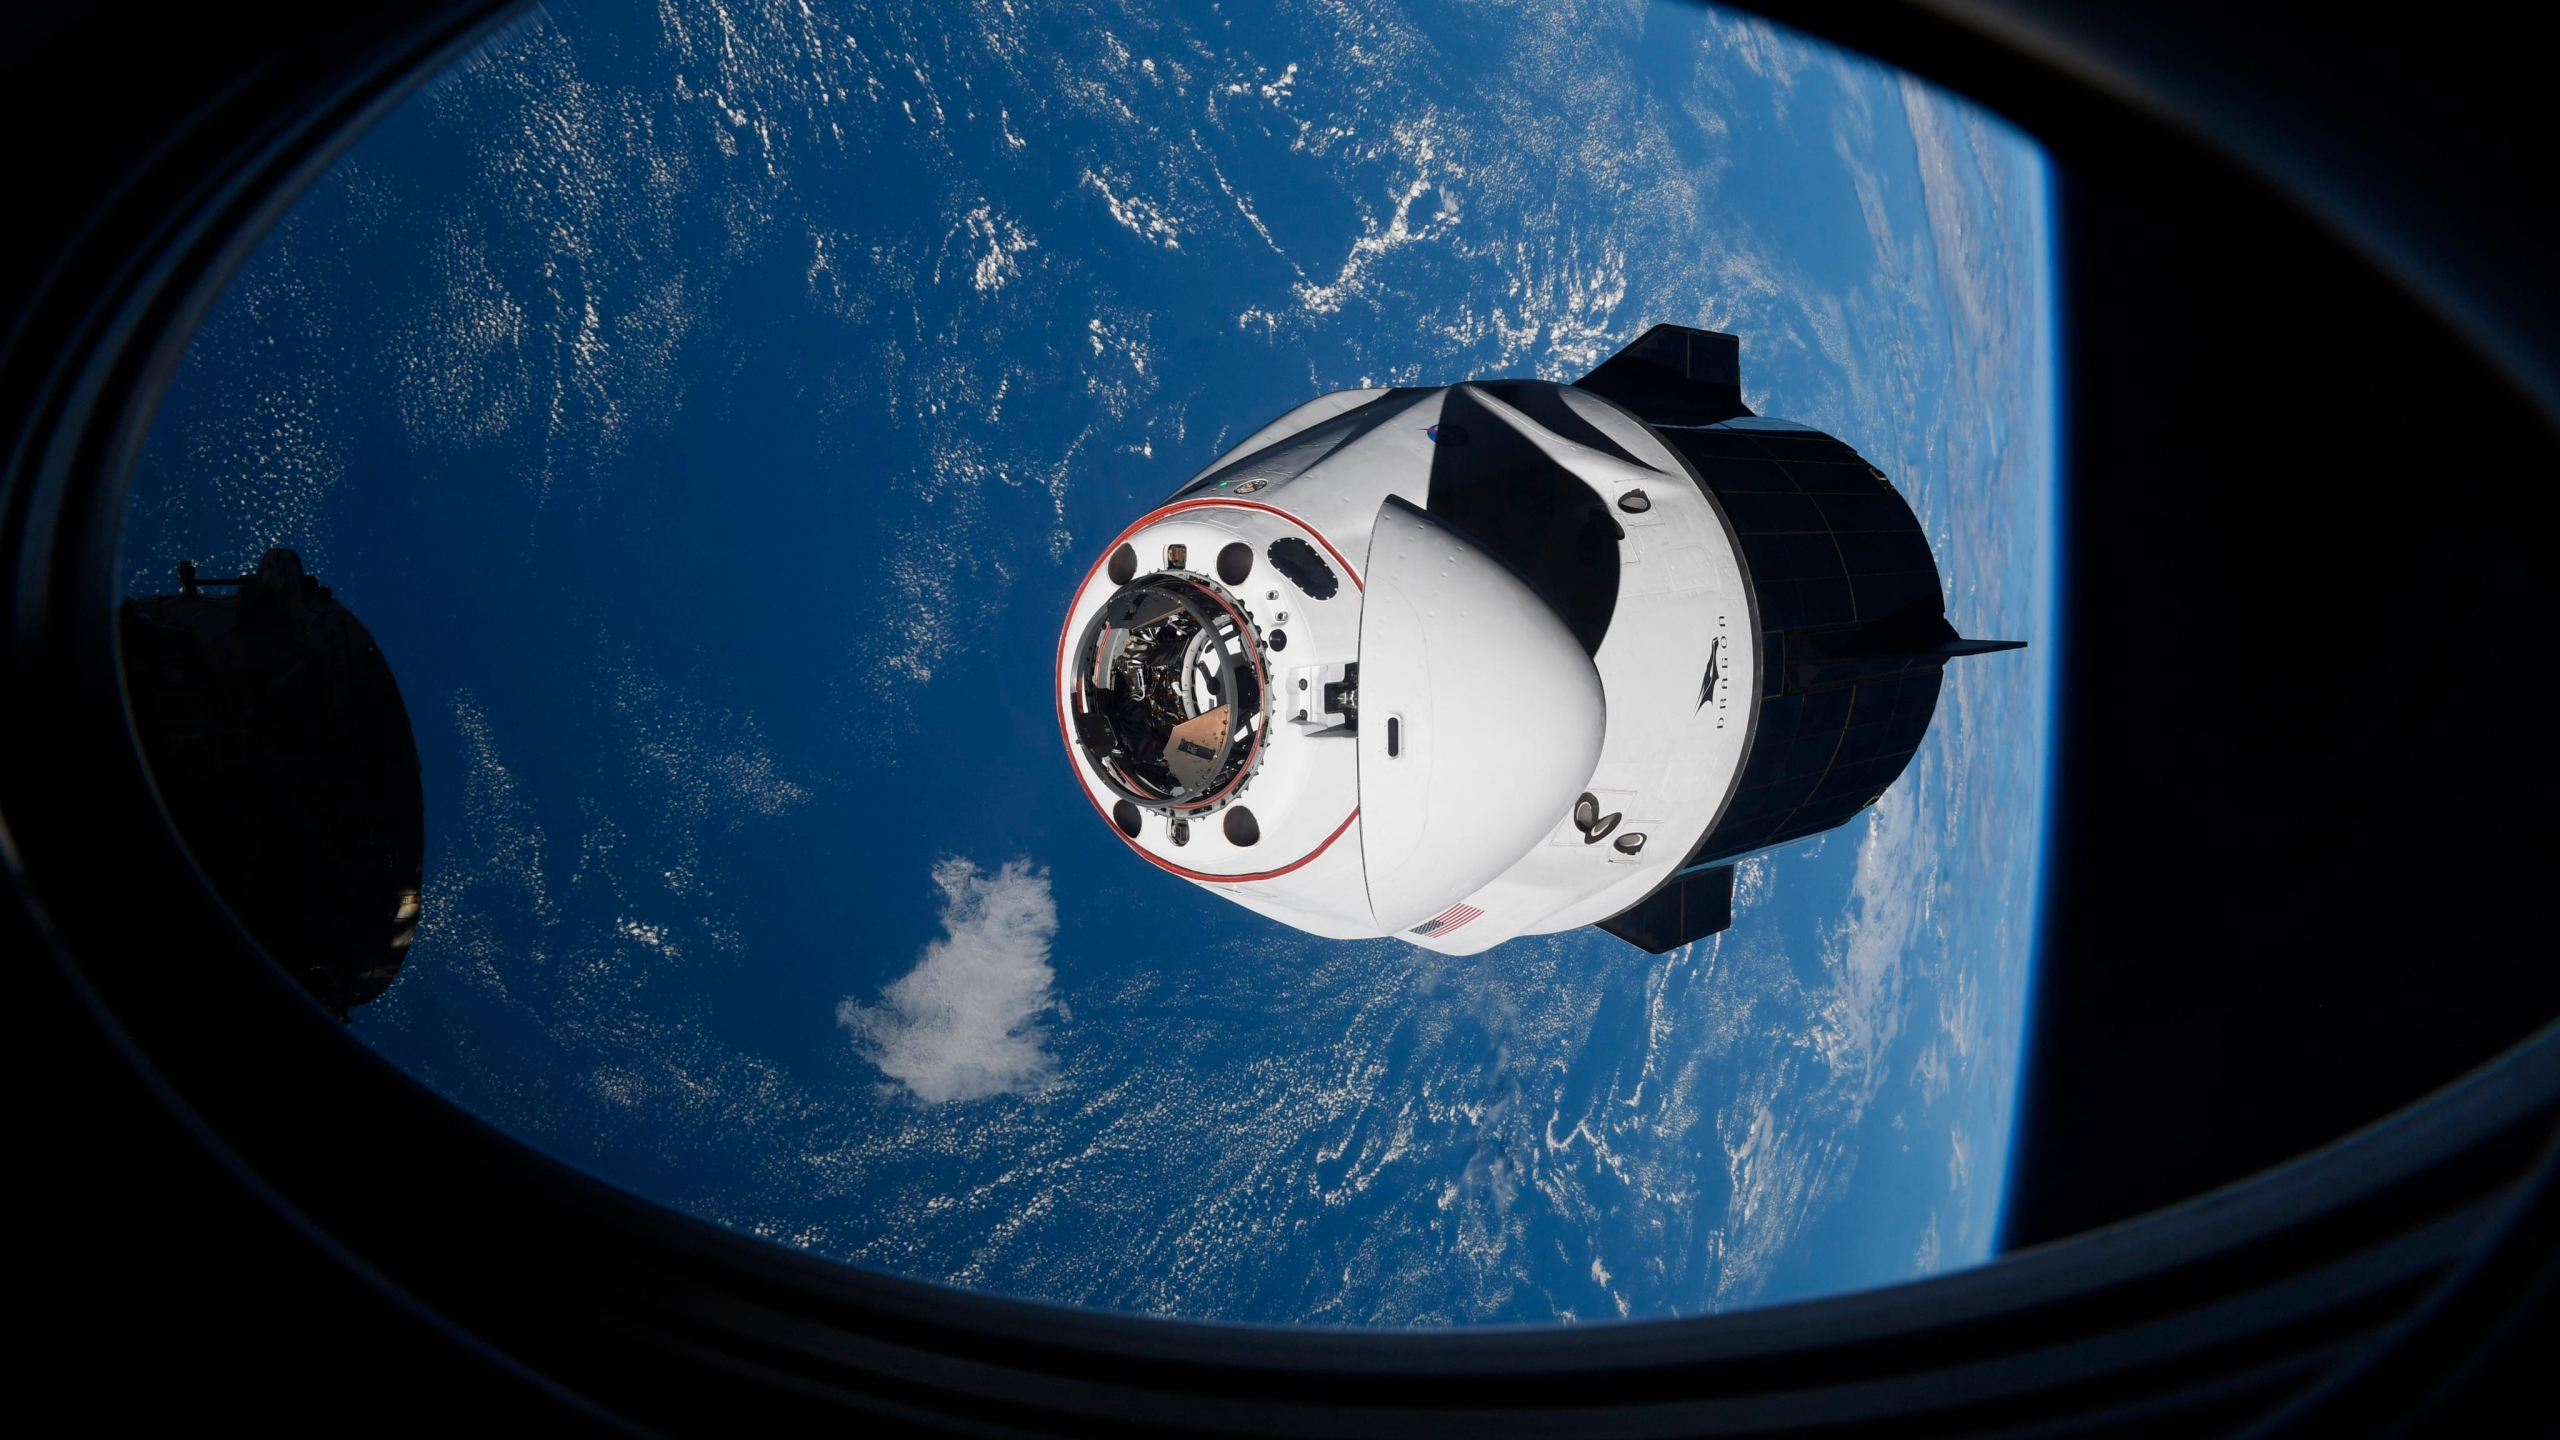 - 0e44f7dce1ae415e86adeff5229a6f7f - False alarm: No space junk threat after all to SpaceX crew | WWTI